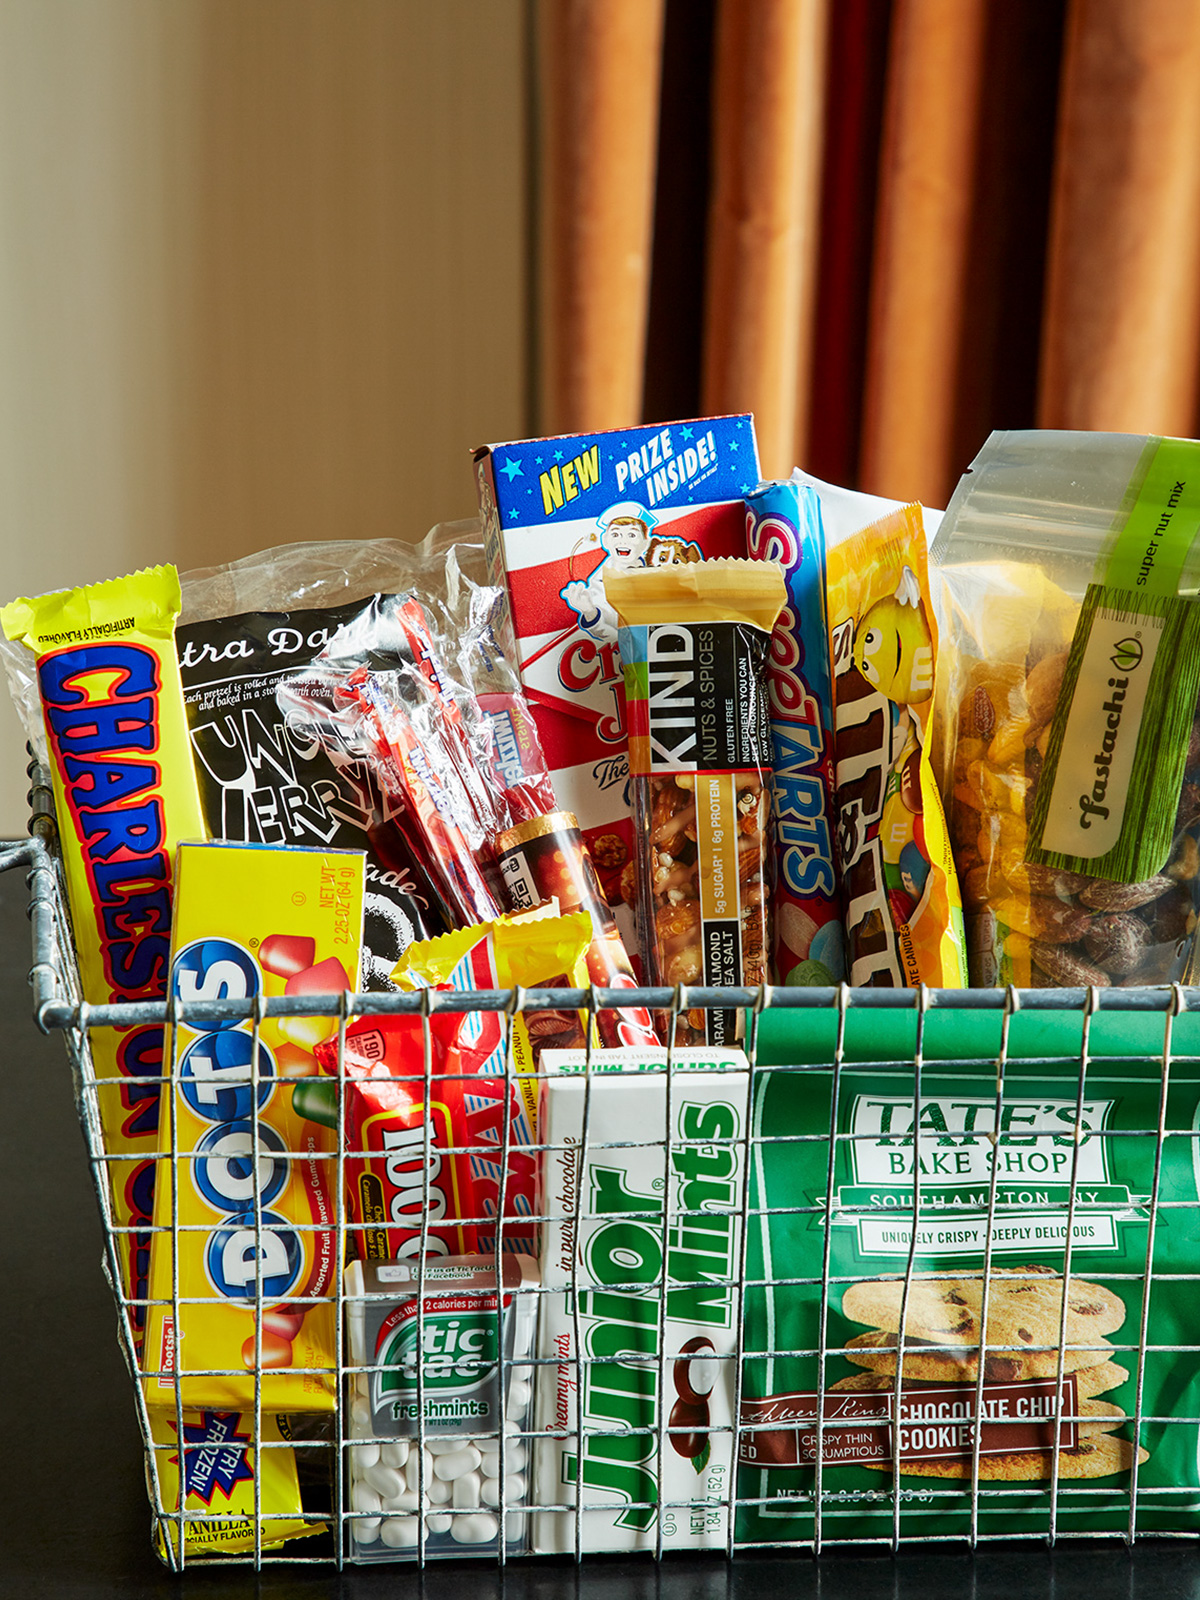 View of the complimentary snack basket